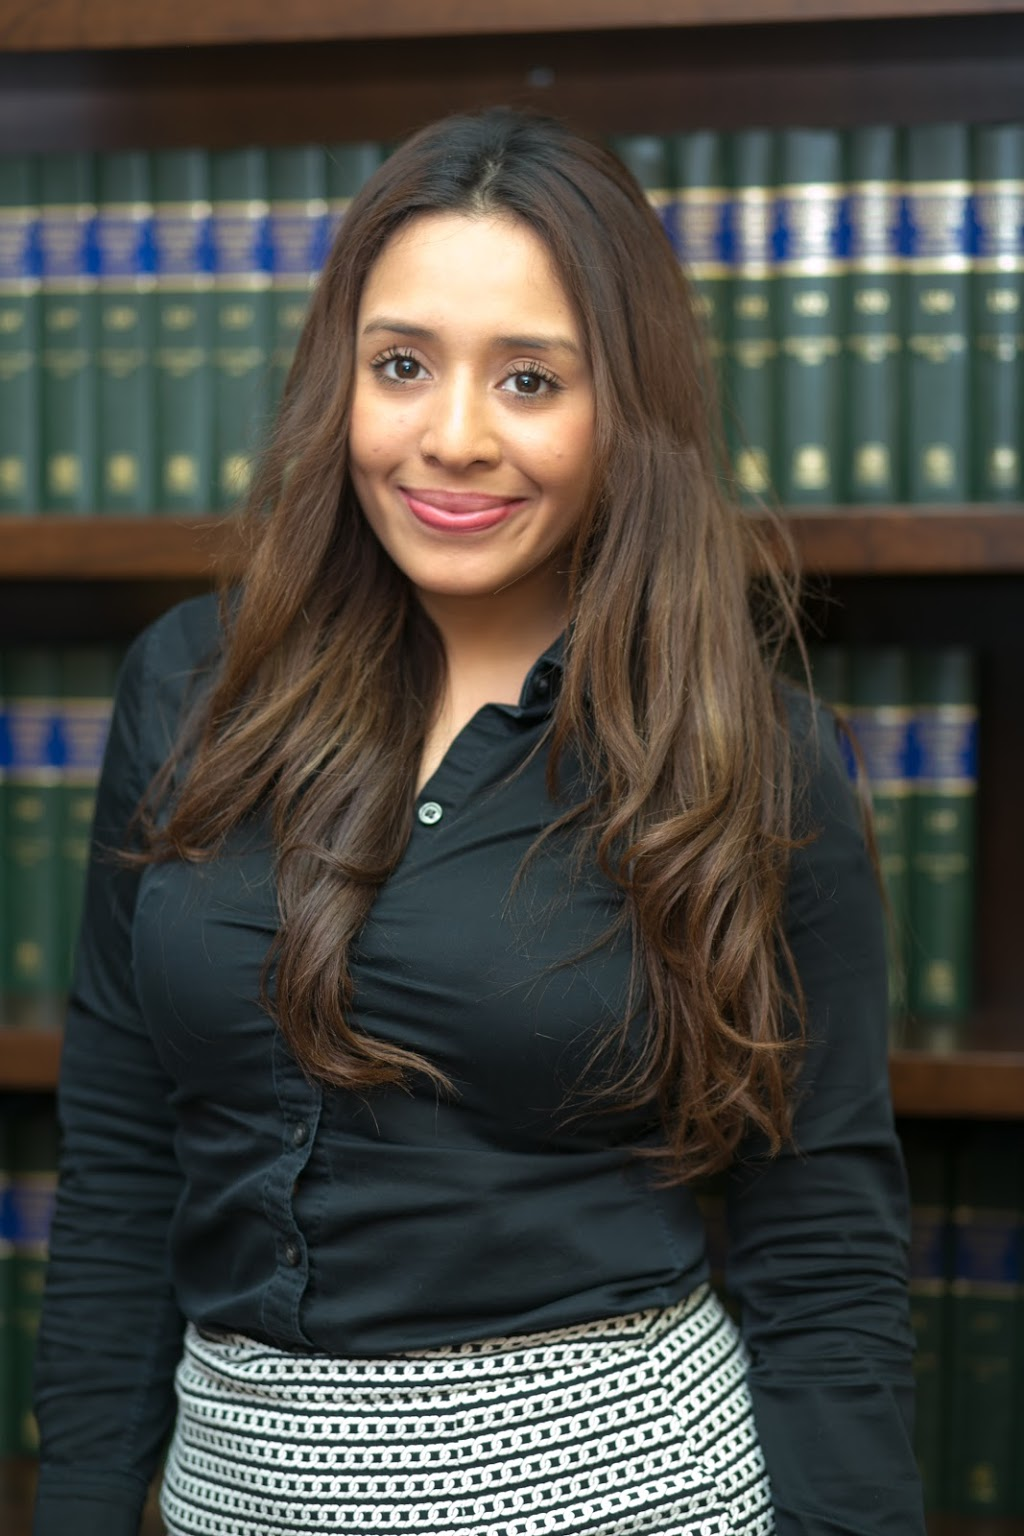 Worsoff Law Firm   lawyer   469 Lawrence Ave W, North York, ON M5M 1C6, Canada   4164233333 OR +1 416-423-3333